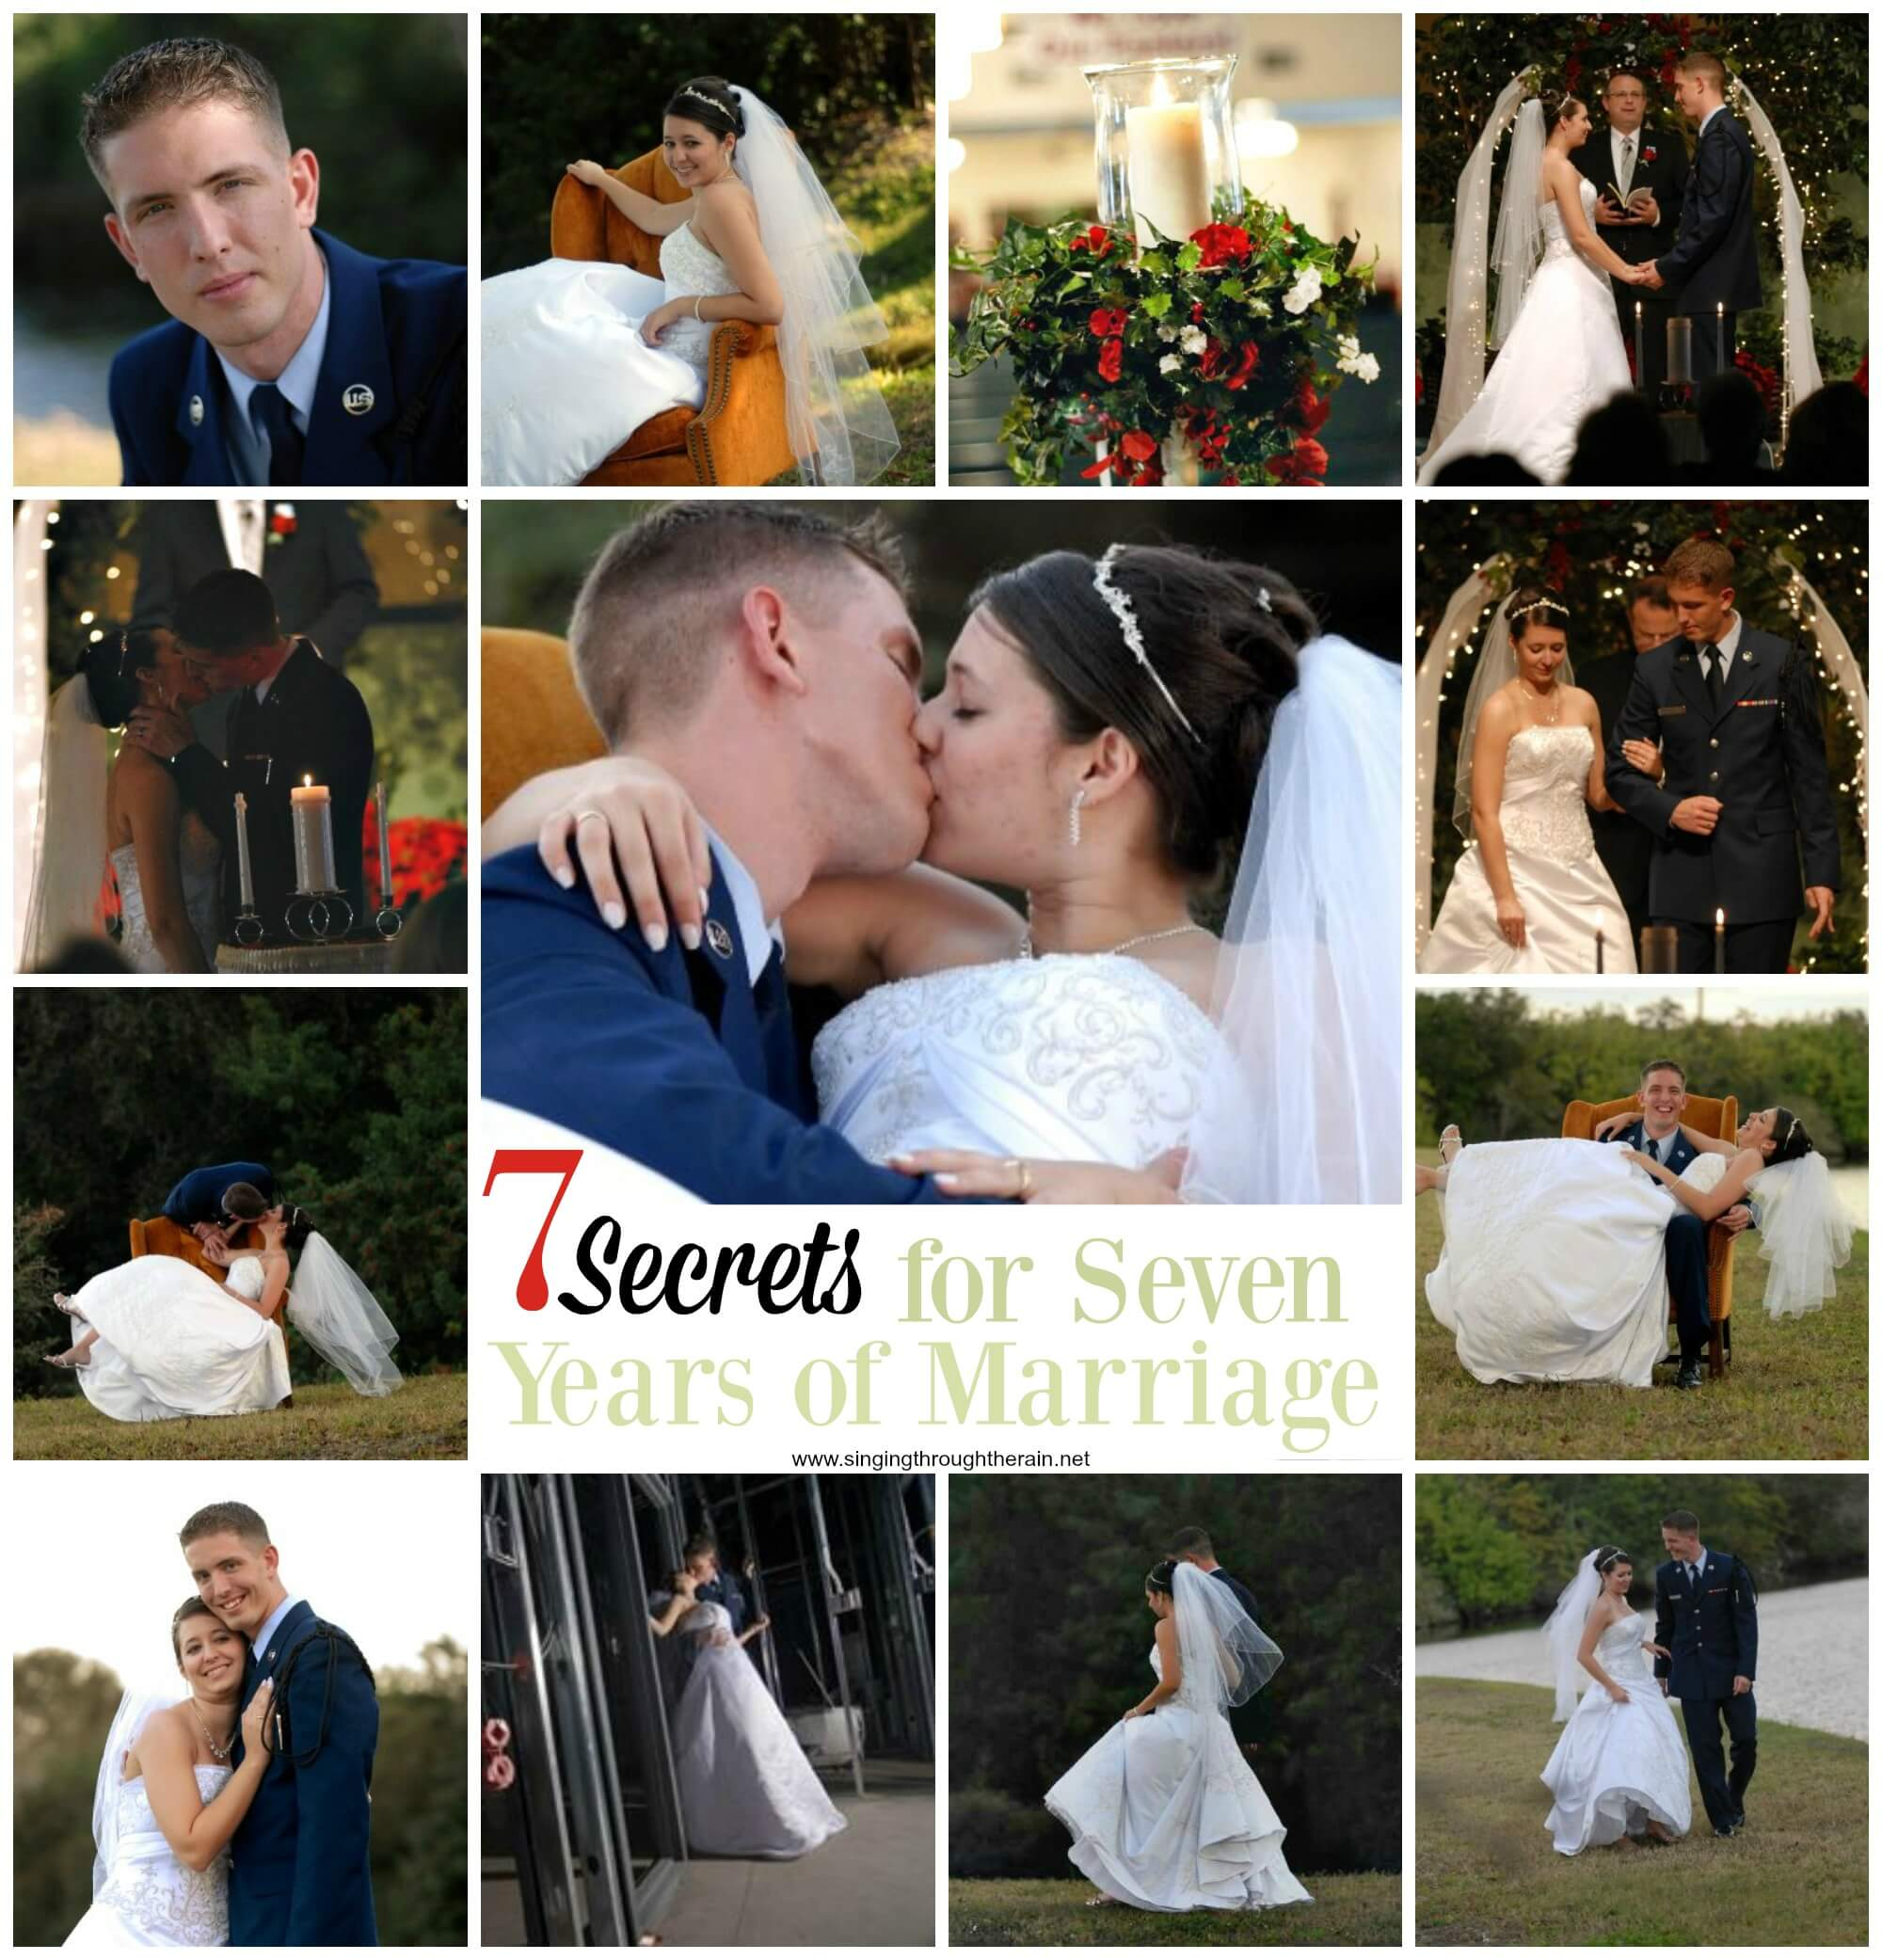 7 Secrets for Seven Years of Marriage